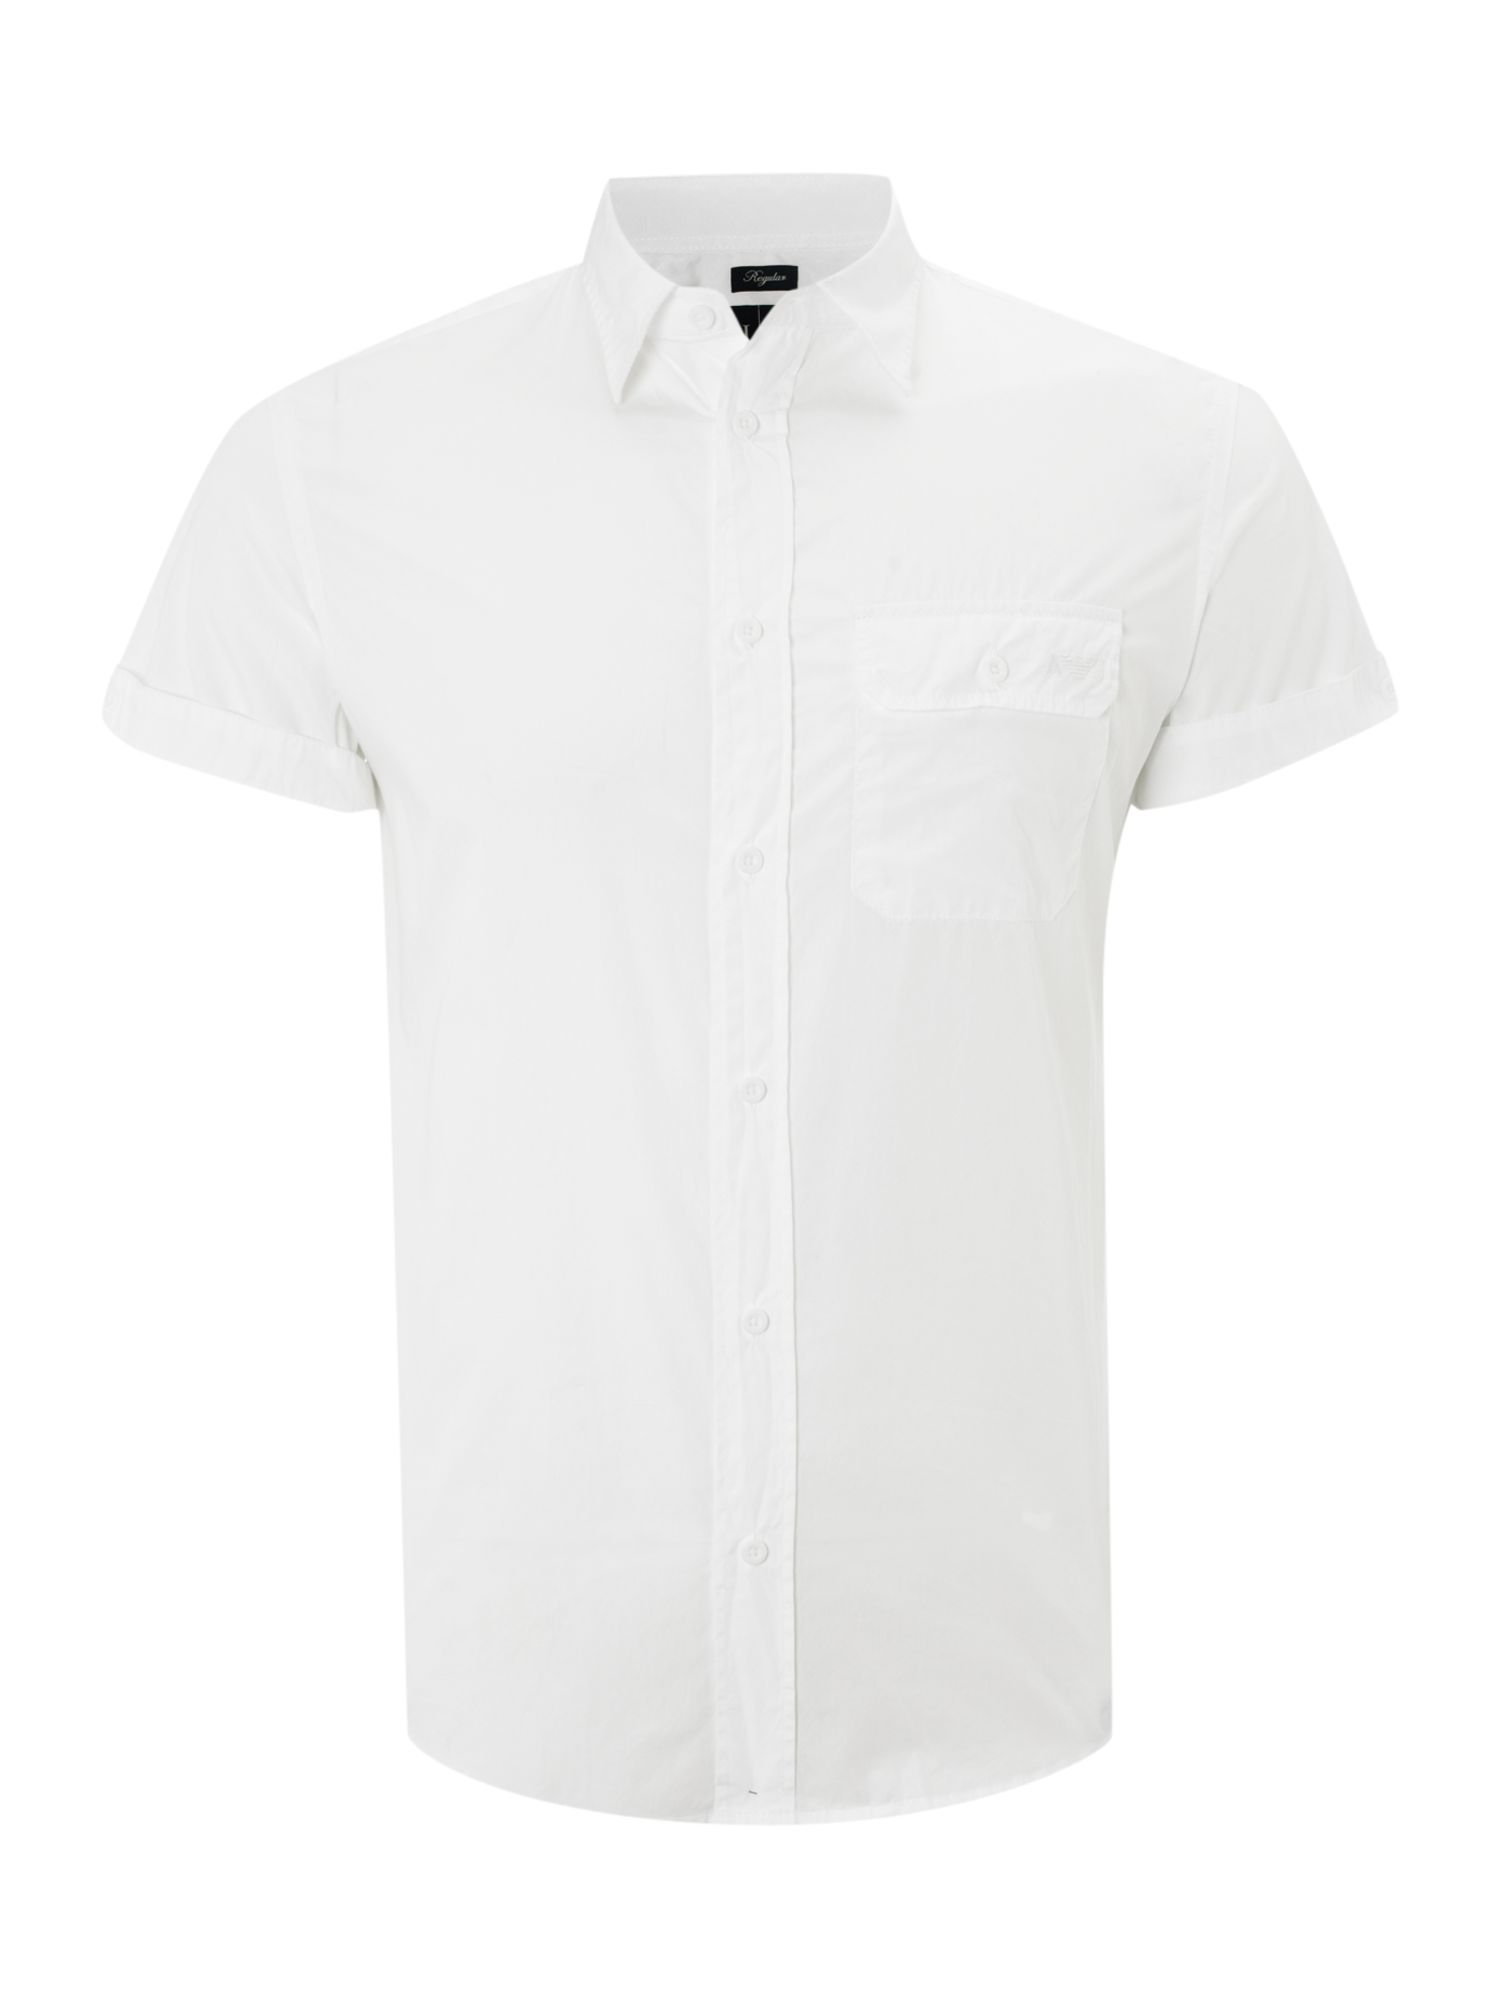 Short sleeved one pocket shirt